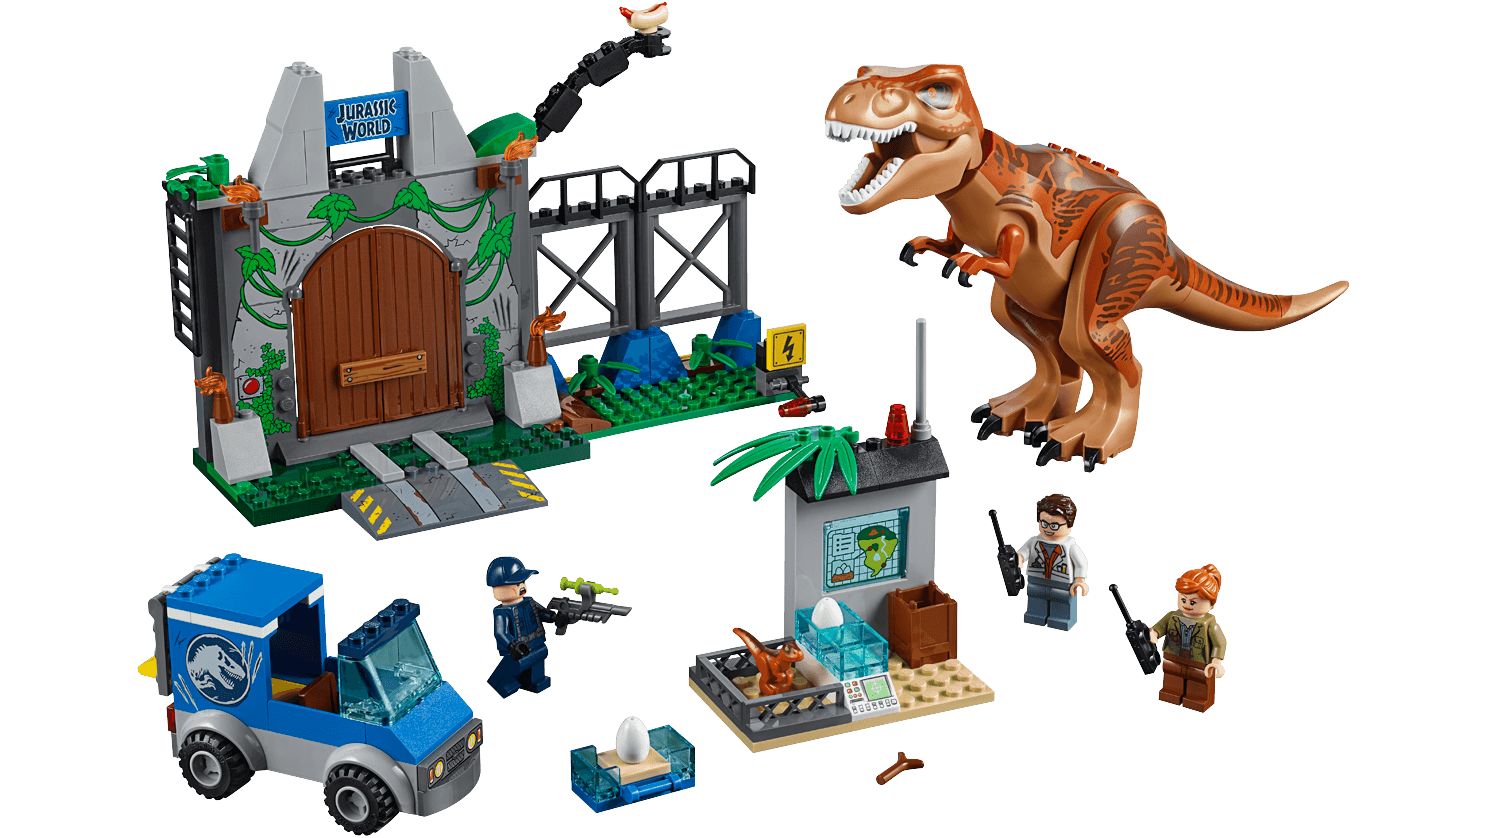 LEGO Juniors - 10758 T. rex Breakout - The set consists of three minifigures, a van, the dinosaur nursery, a dinosaur figure, a big dinosaur enclosure.